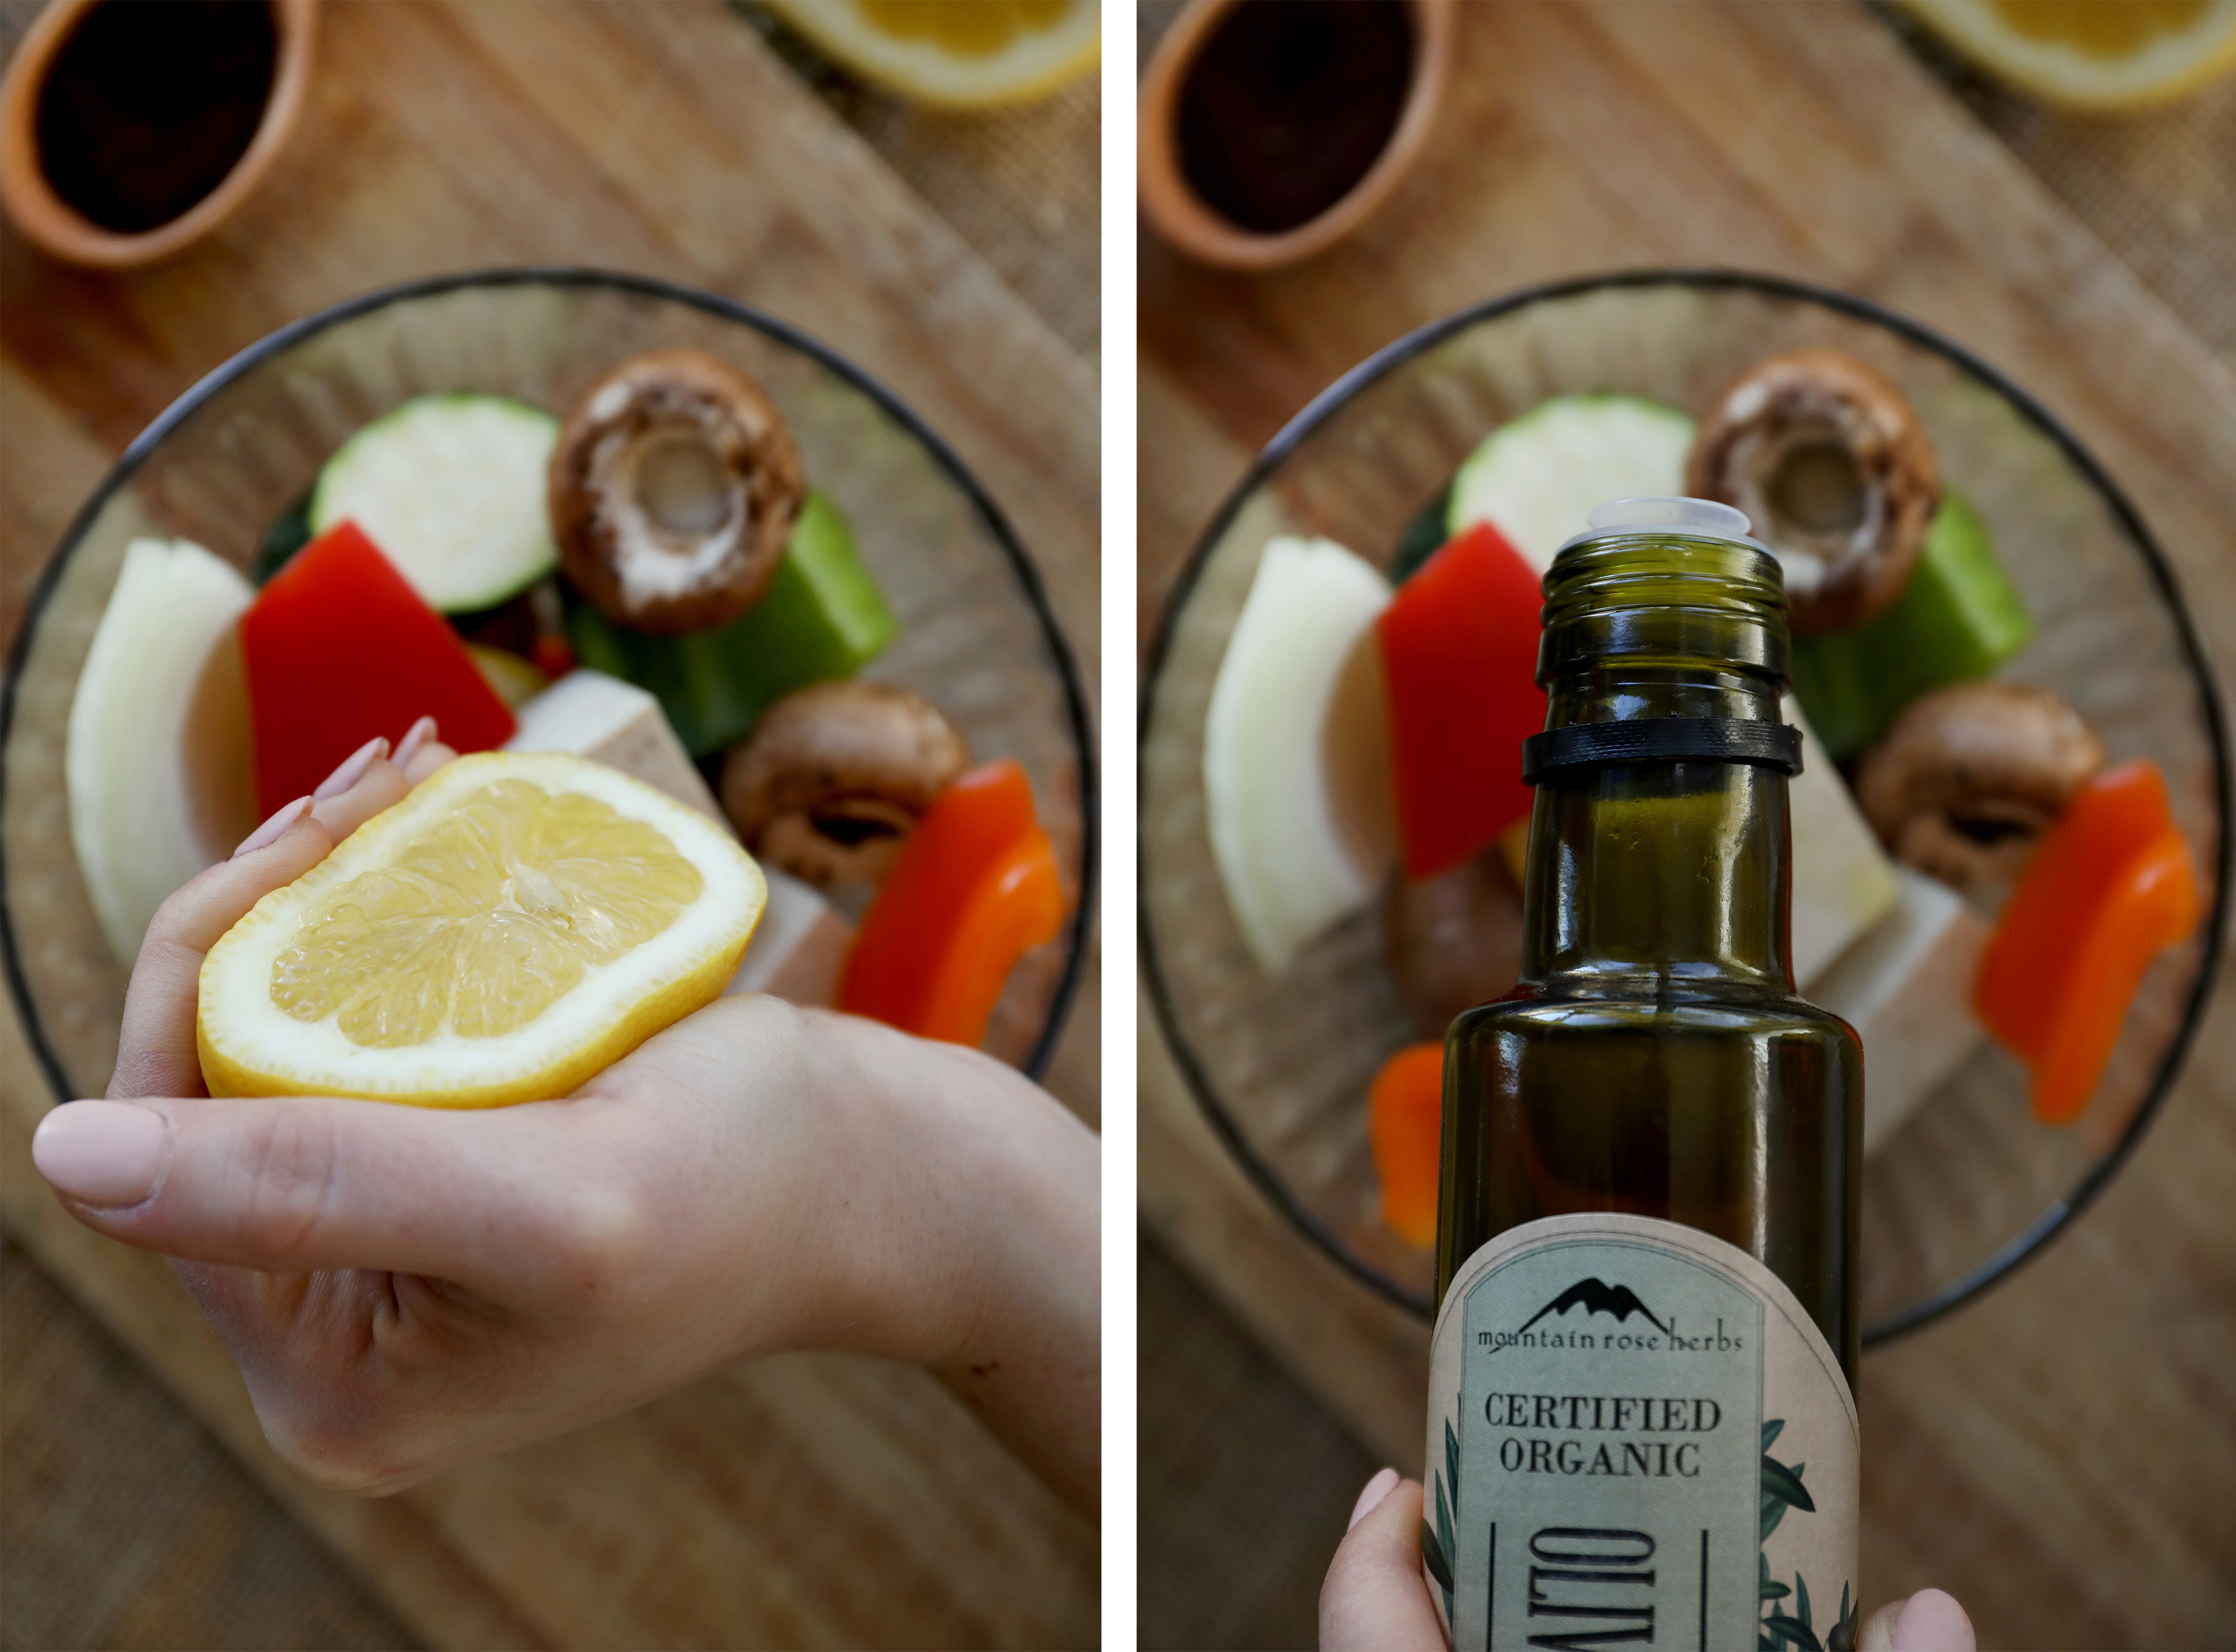 Squeezing fresh lemon juice and using olive oil to dress colorful vegetables to be barbecued.